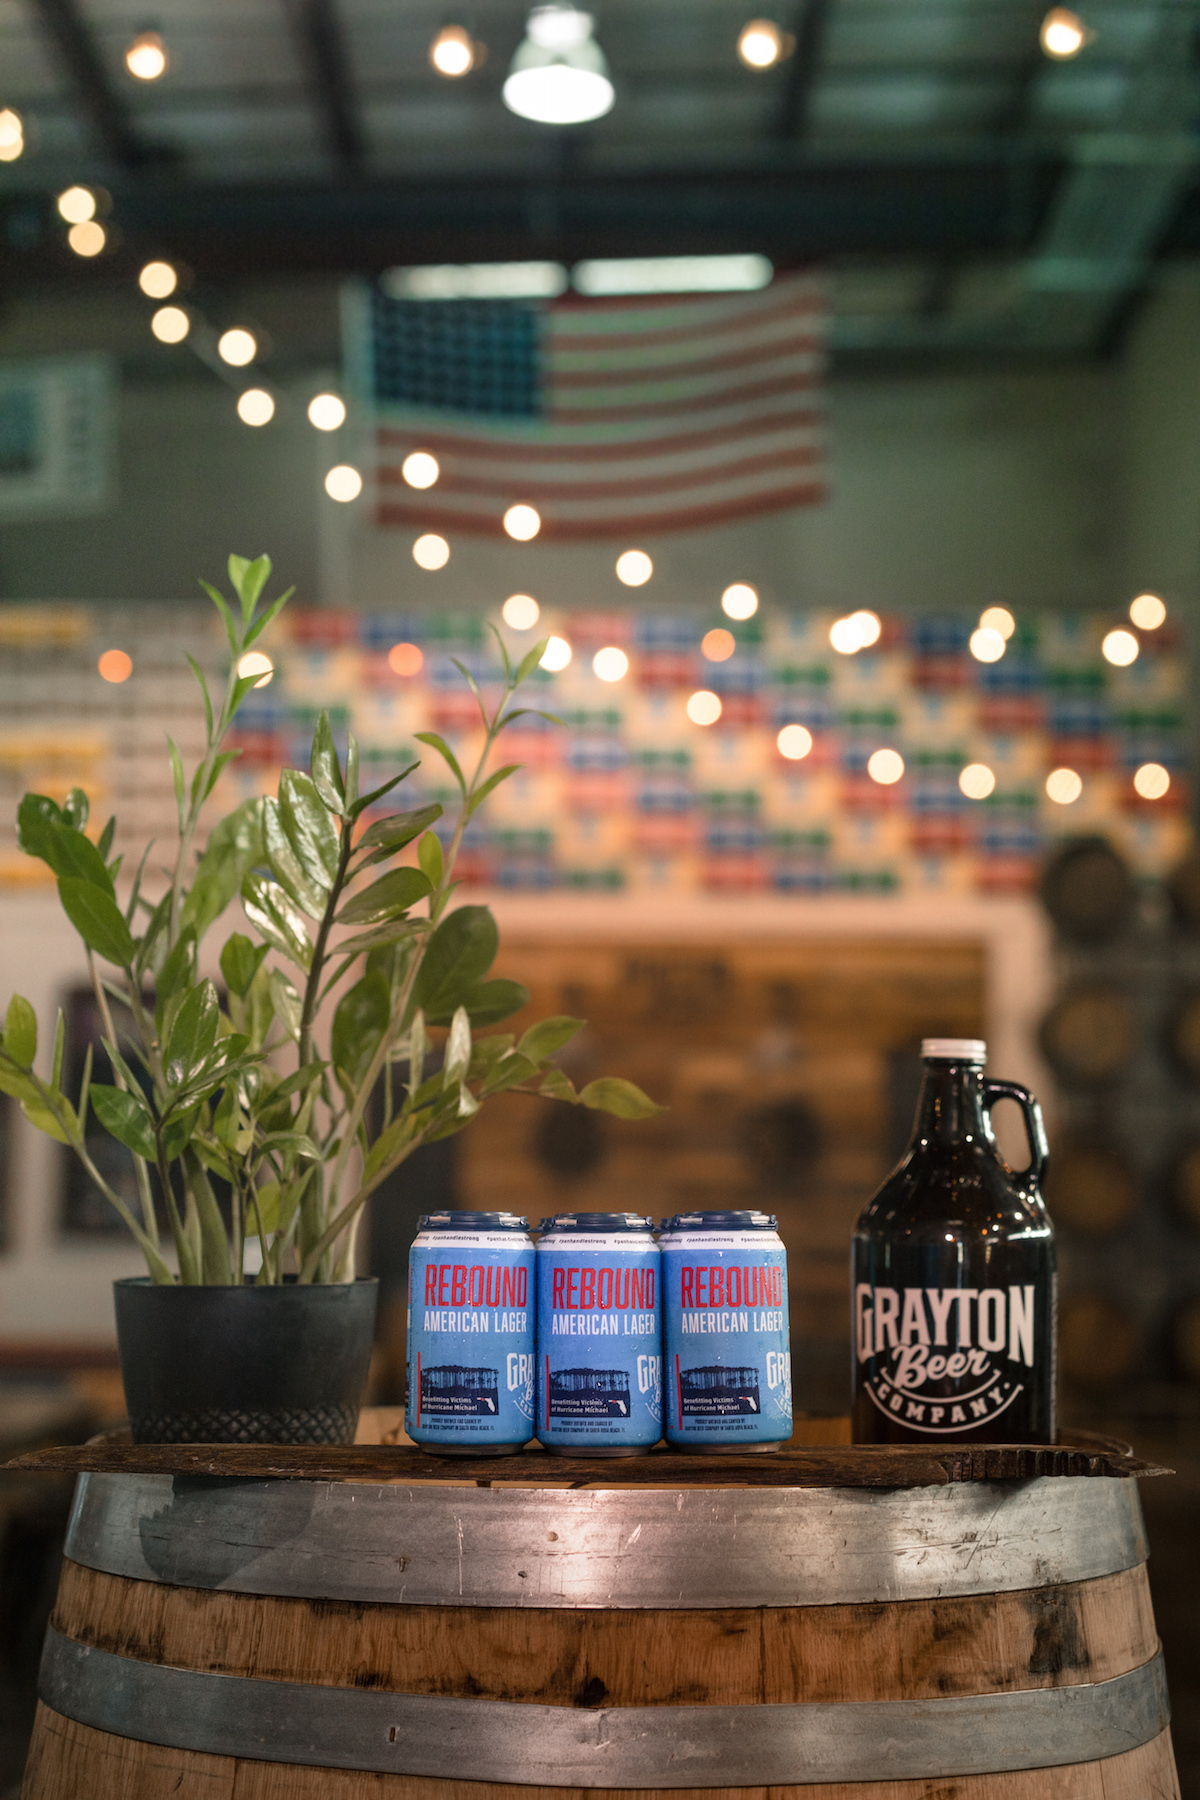 Rebound American Lager by Grayton Beer Company Fundraiser for Hurricane Michael Relief